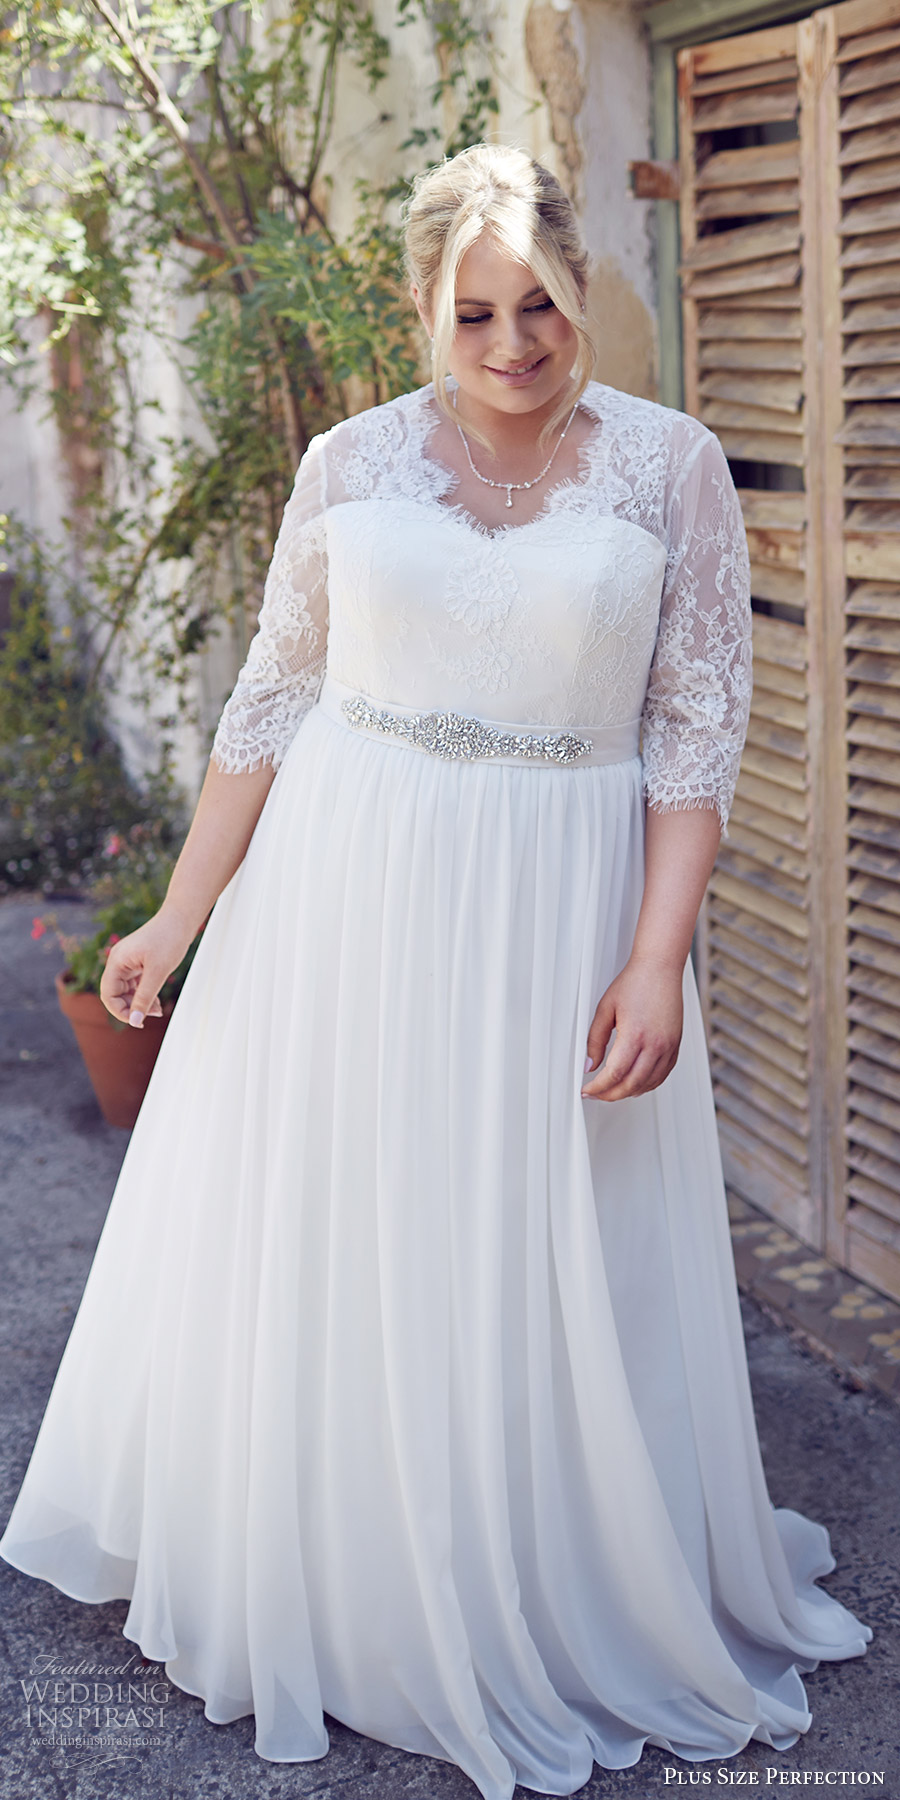 c7cf93ac80625 plus size perfection bridal 2016 3 quarter sleeves sweetheart illusion v  neck lace bodice a line